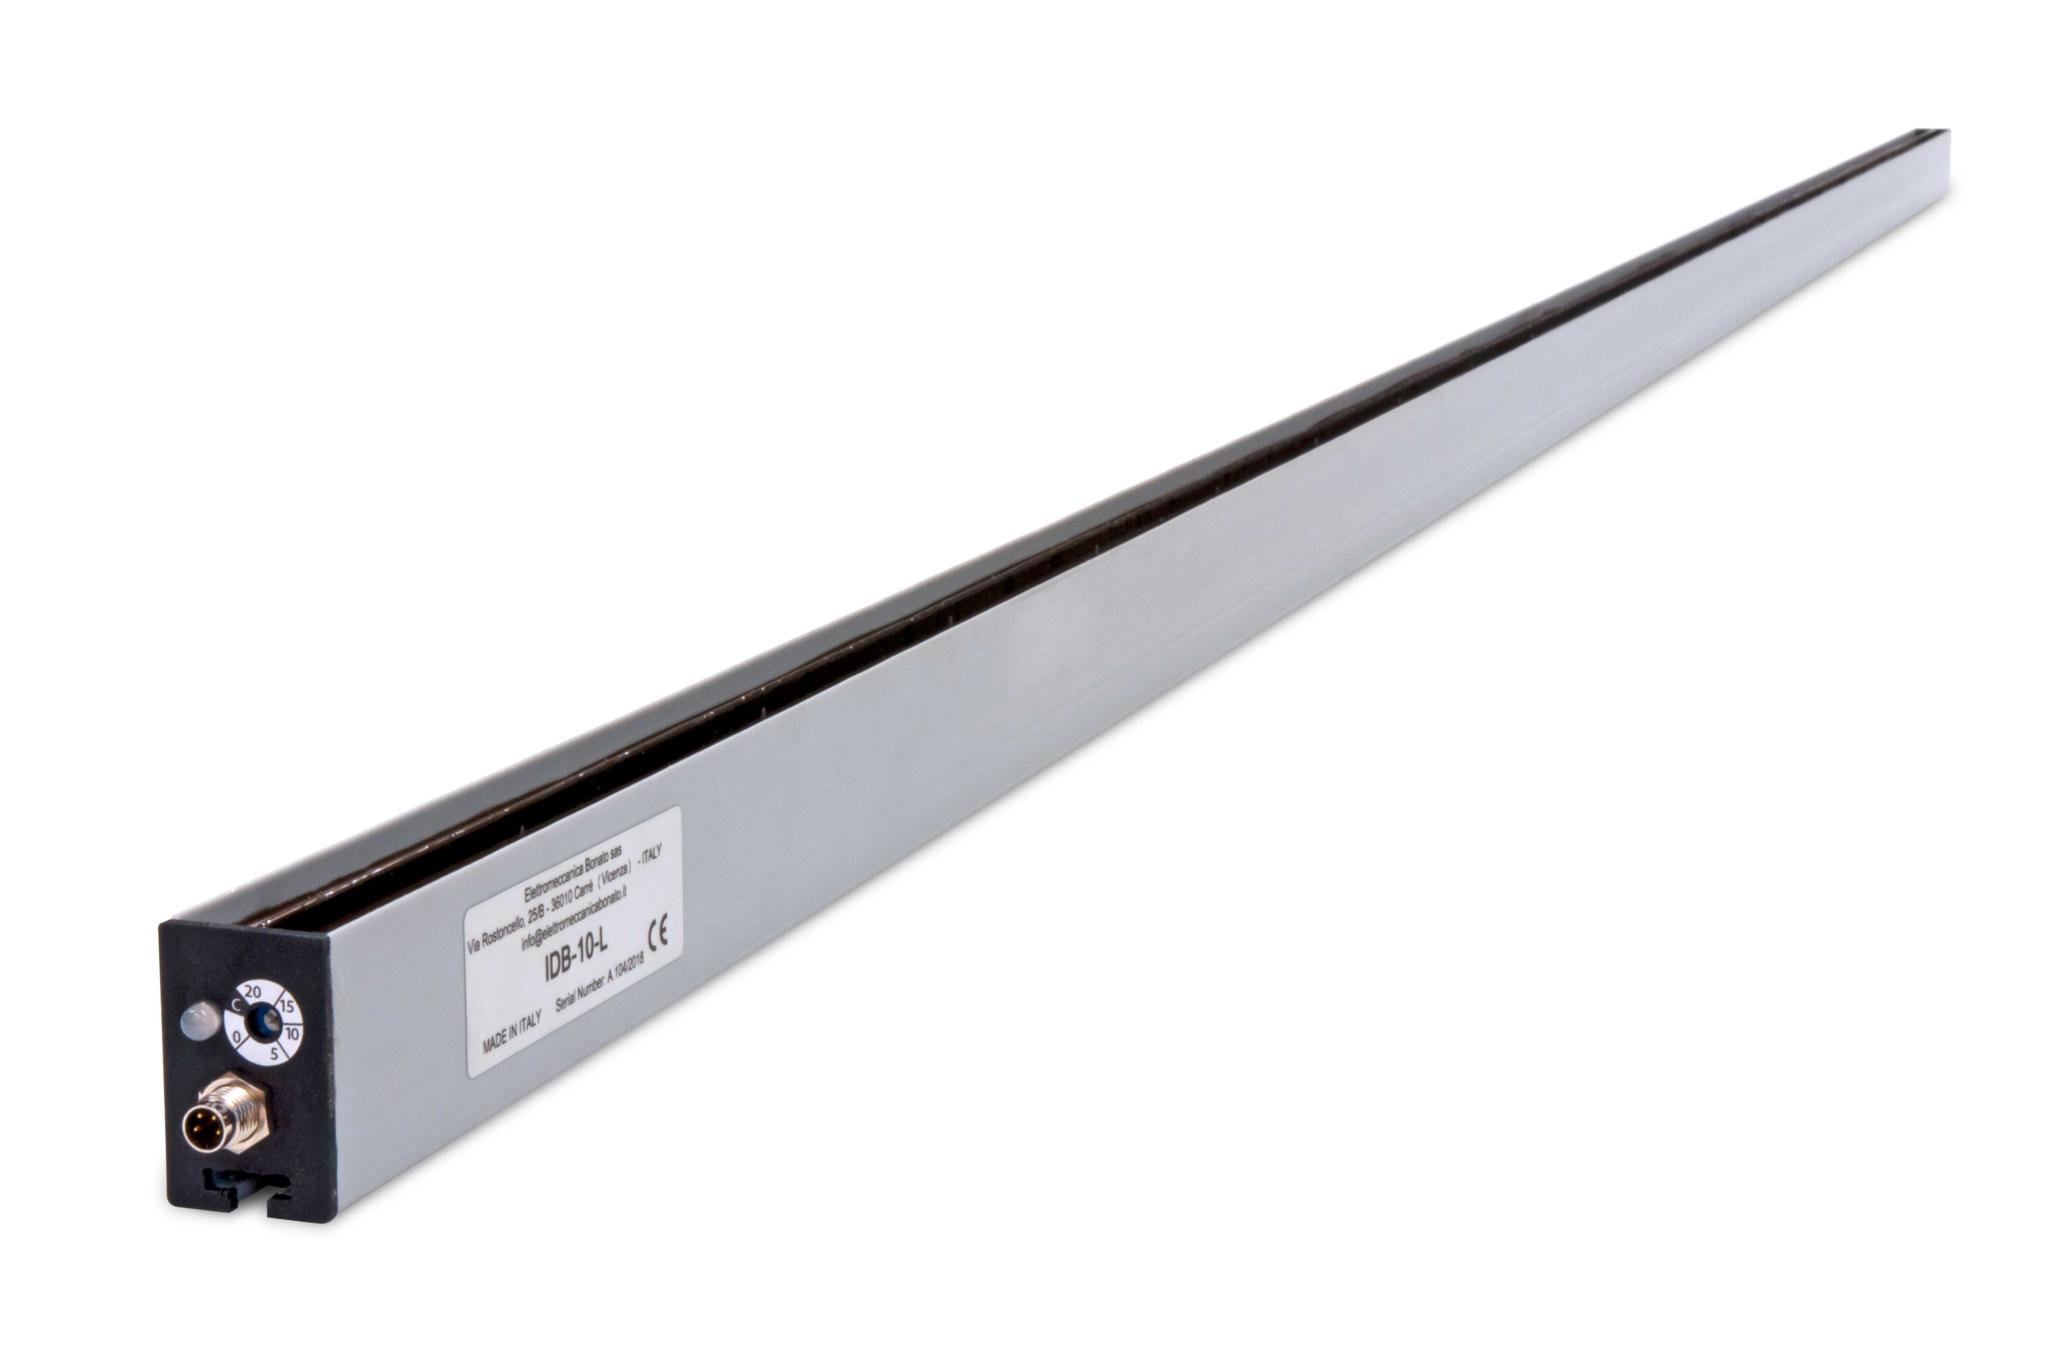 Antistatic-bar-idb11-2